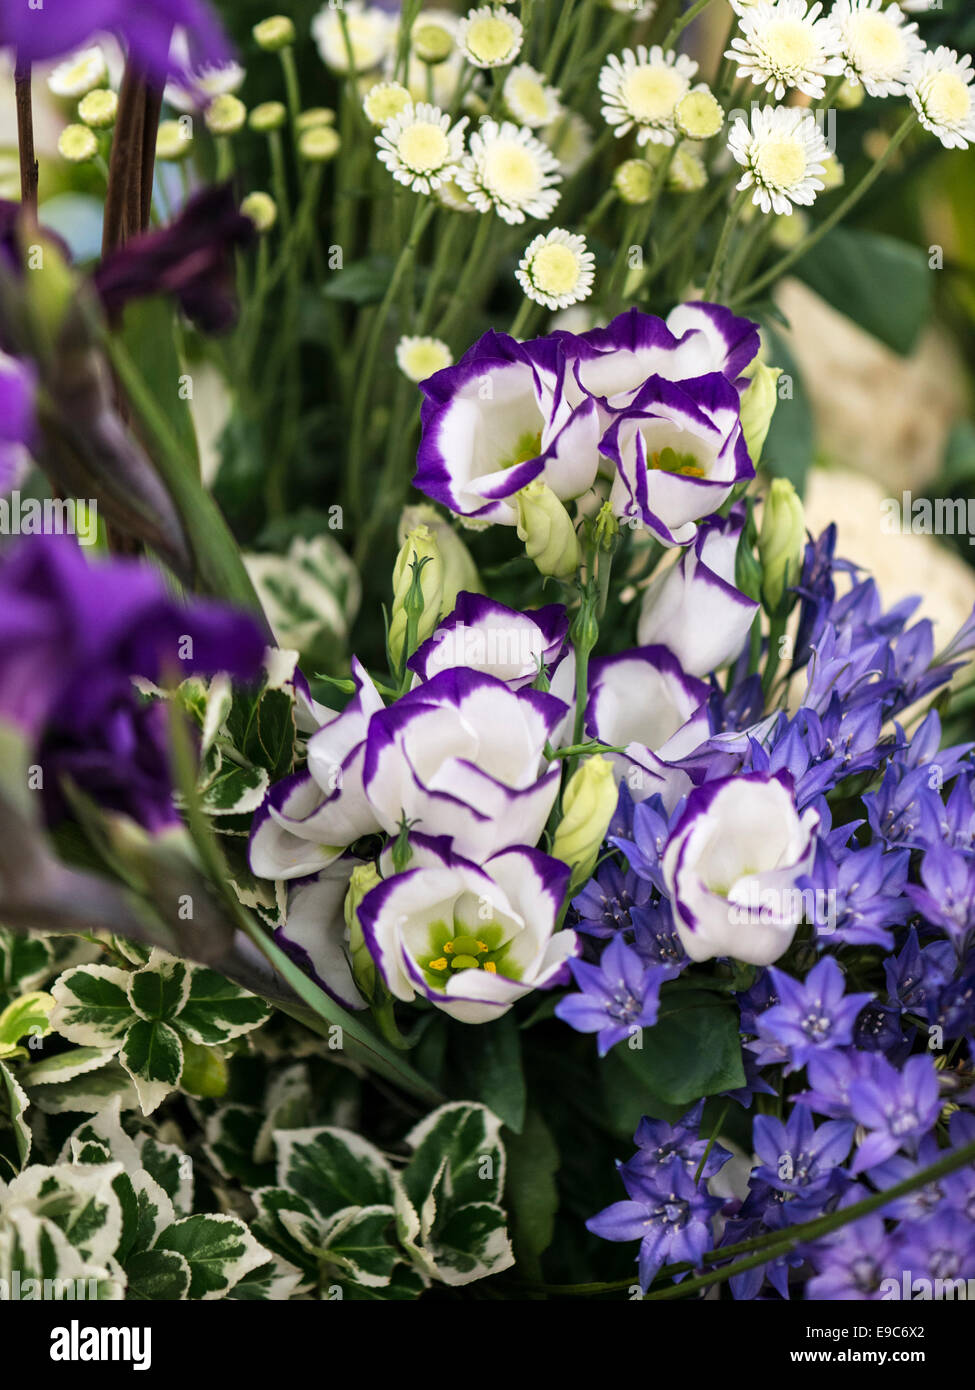 Mixed bouquet of beautiful purple, blue and white flowers - Stock Image